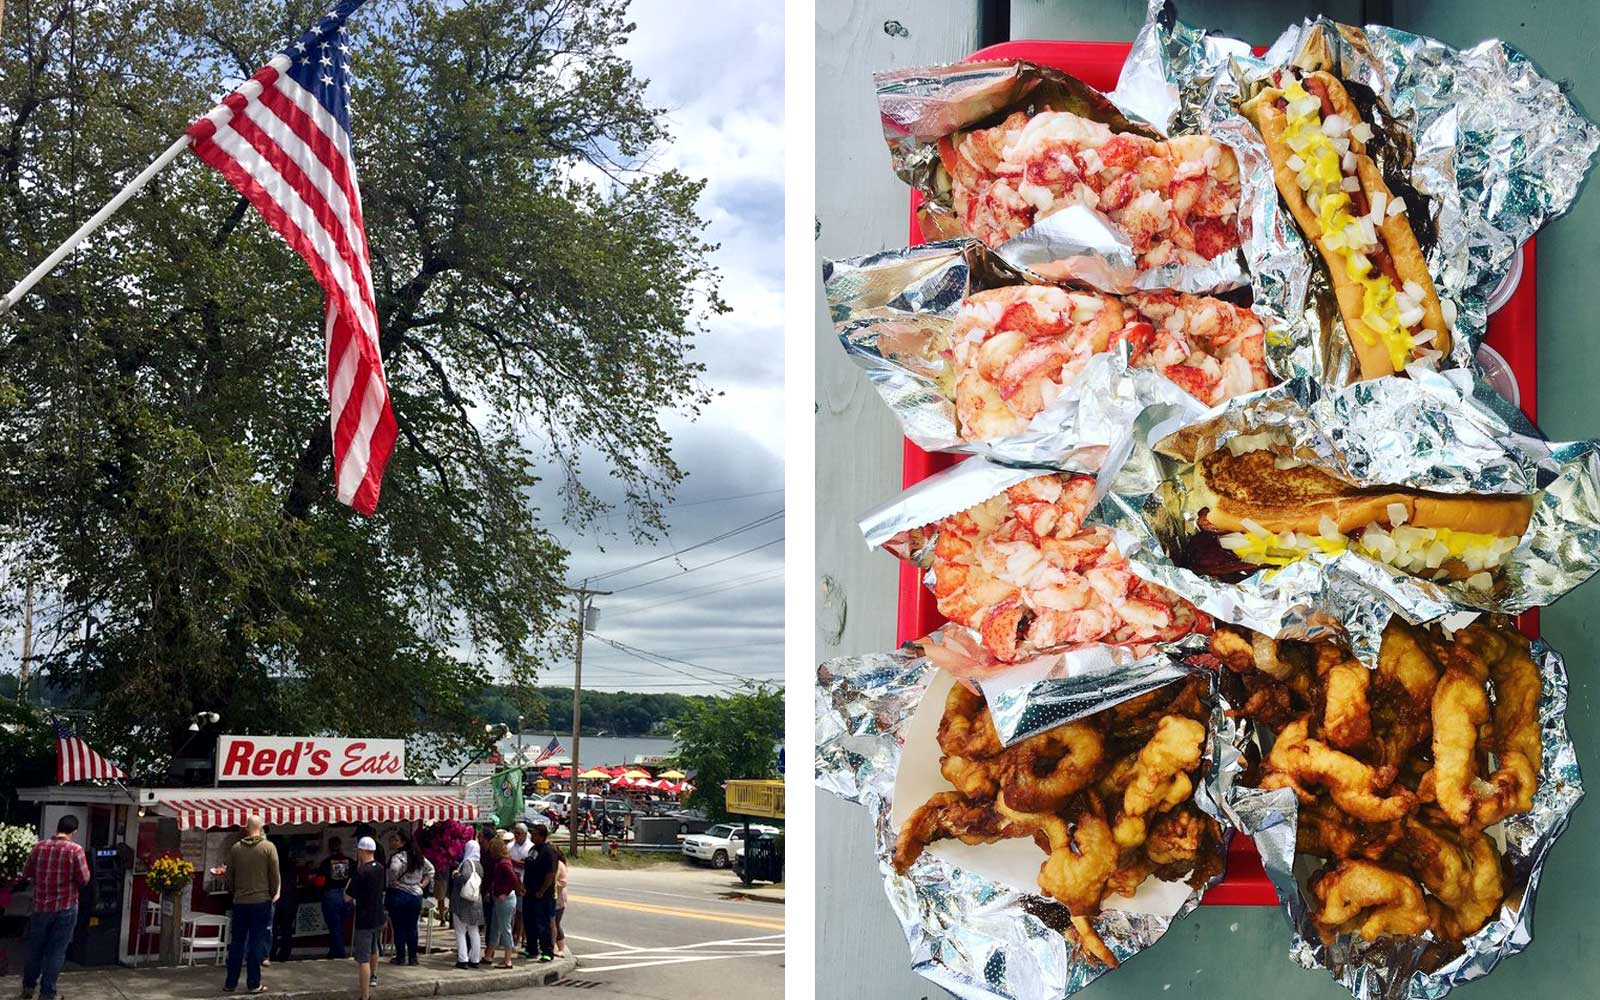 Red's Eats, Maine